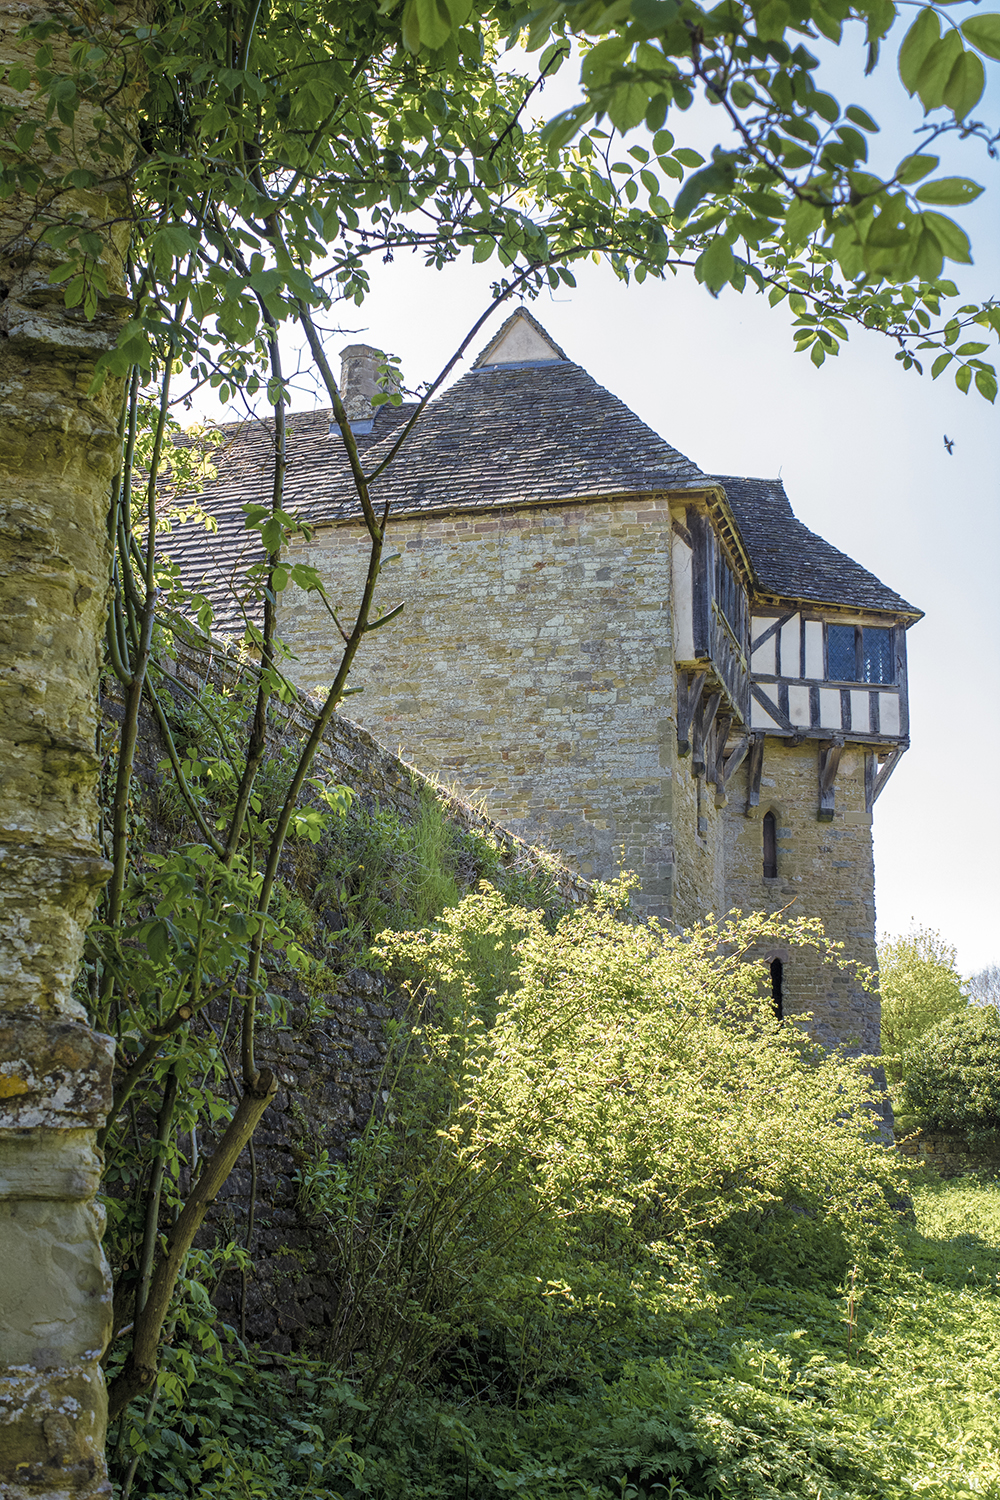 Stokesay Castle 5 May 6 2018.jpg